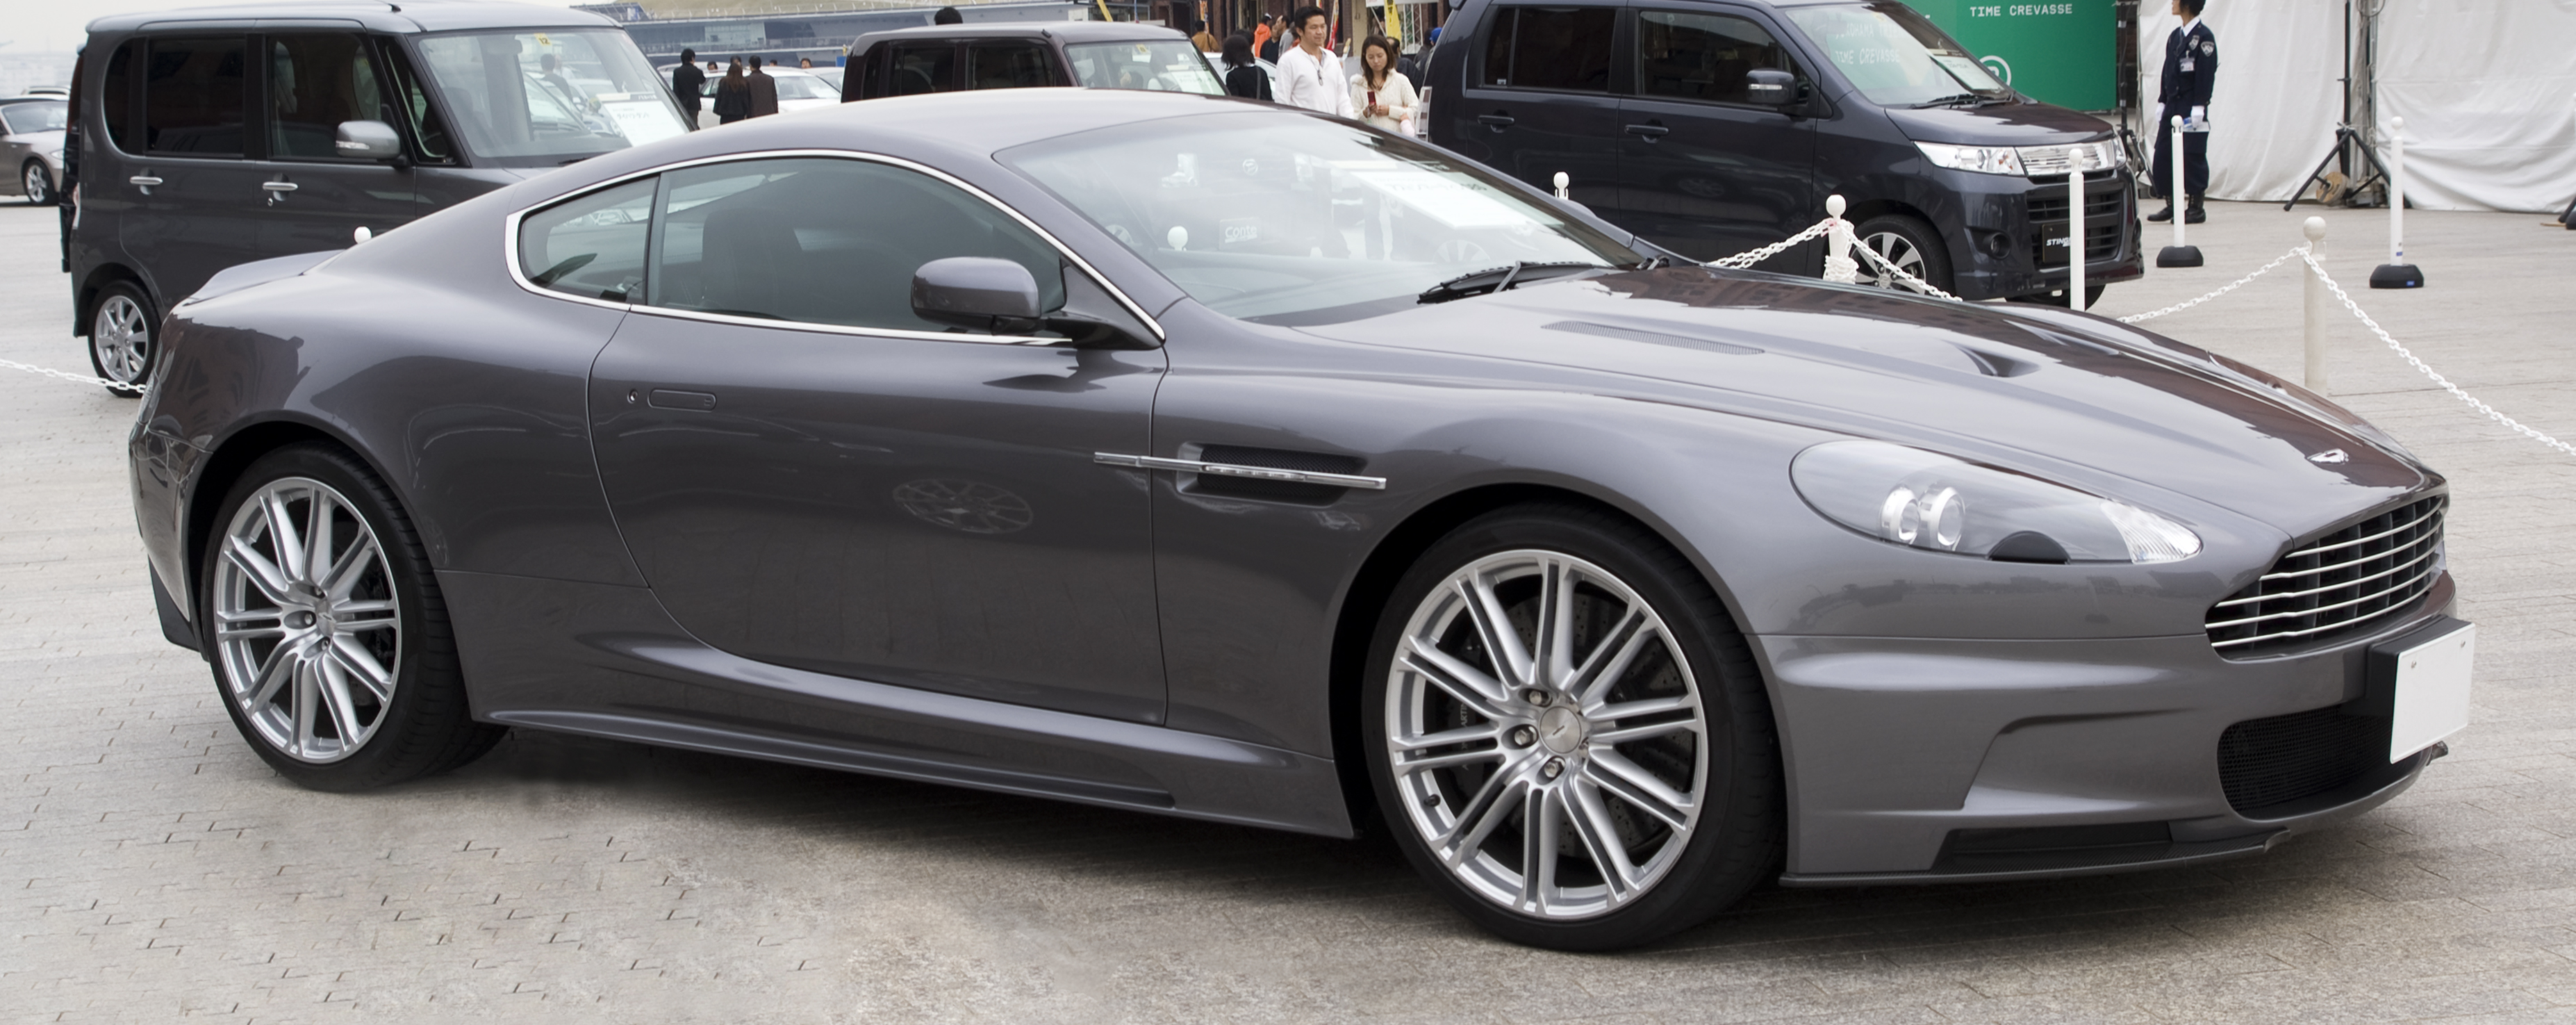 TopWorldAuto s of Aston Martin DBS photo galleries